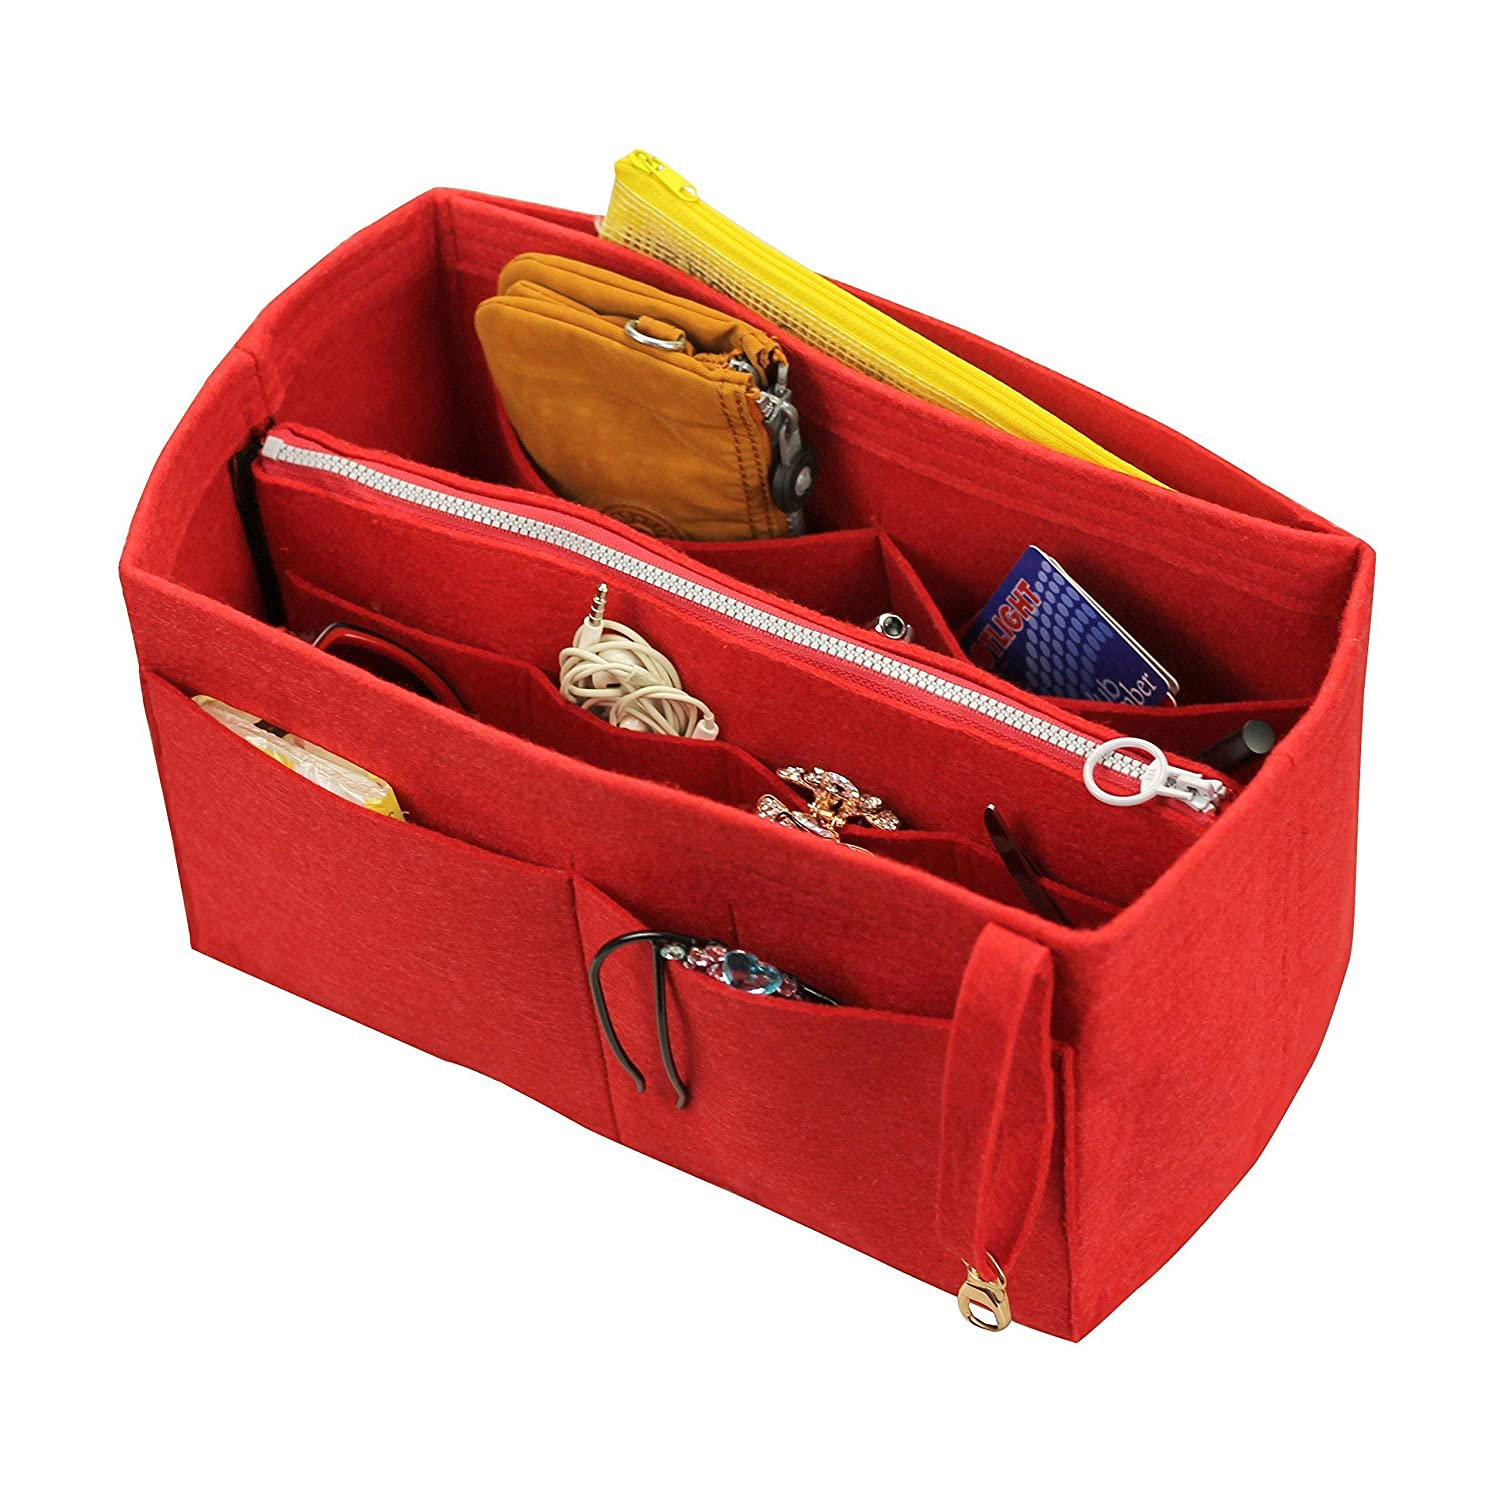 [Fits Graceful MM, Red] Felt Organizer (with Detachable Middle Zipper Bag), Bag in Bag, Wool Purse Insert, Customized Tote Organize, Cosmetic Makeup Diaper Handbag